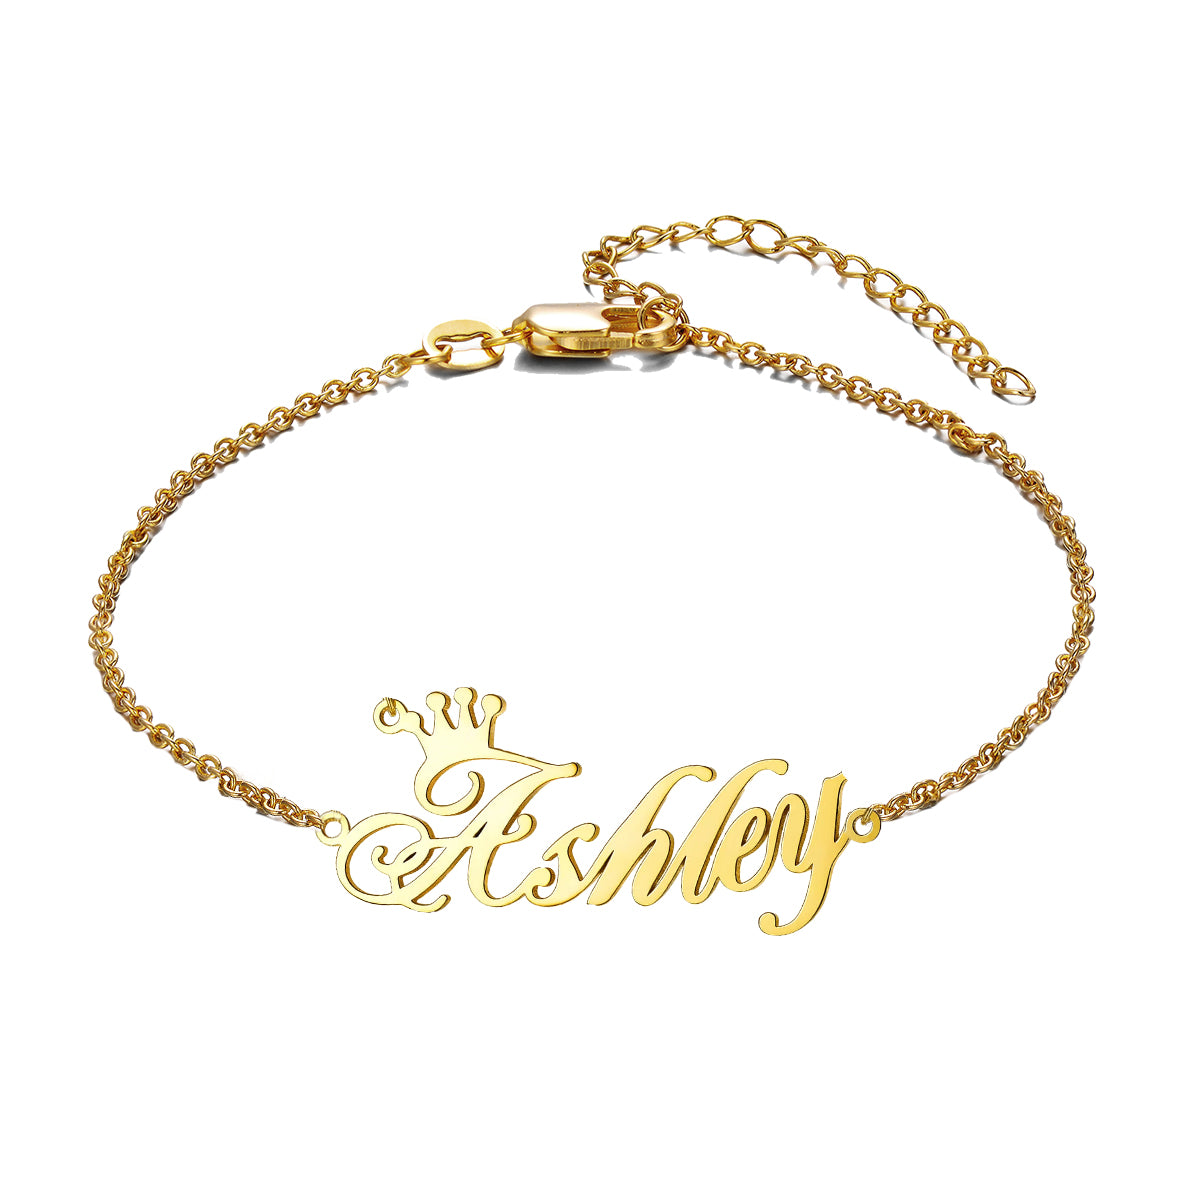 925 Sterling Silver Ashley Name Anklet With Crown, Gold Anklet With Name For Women - onlyone